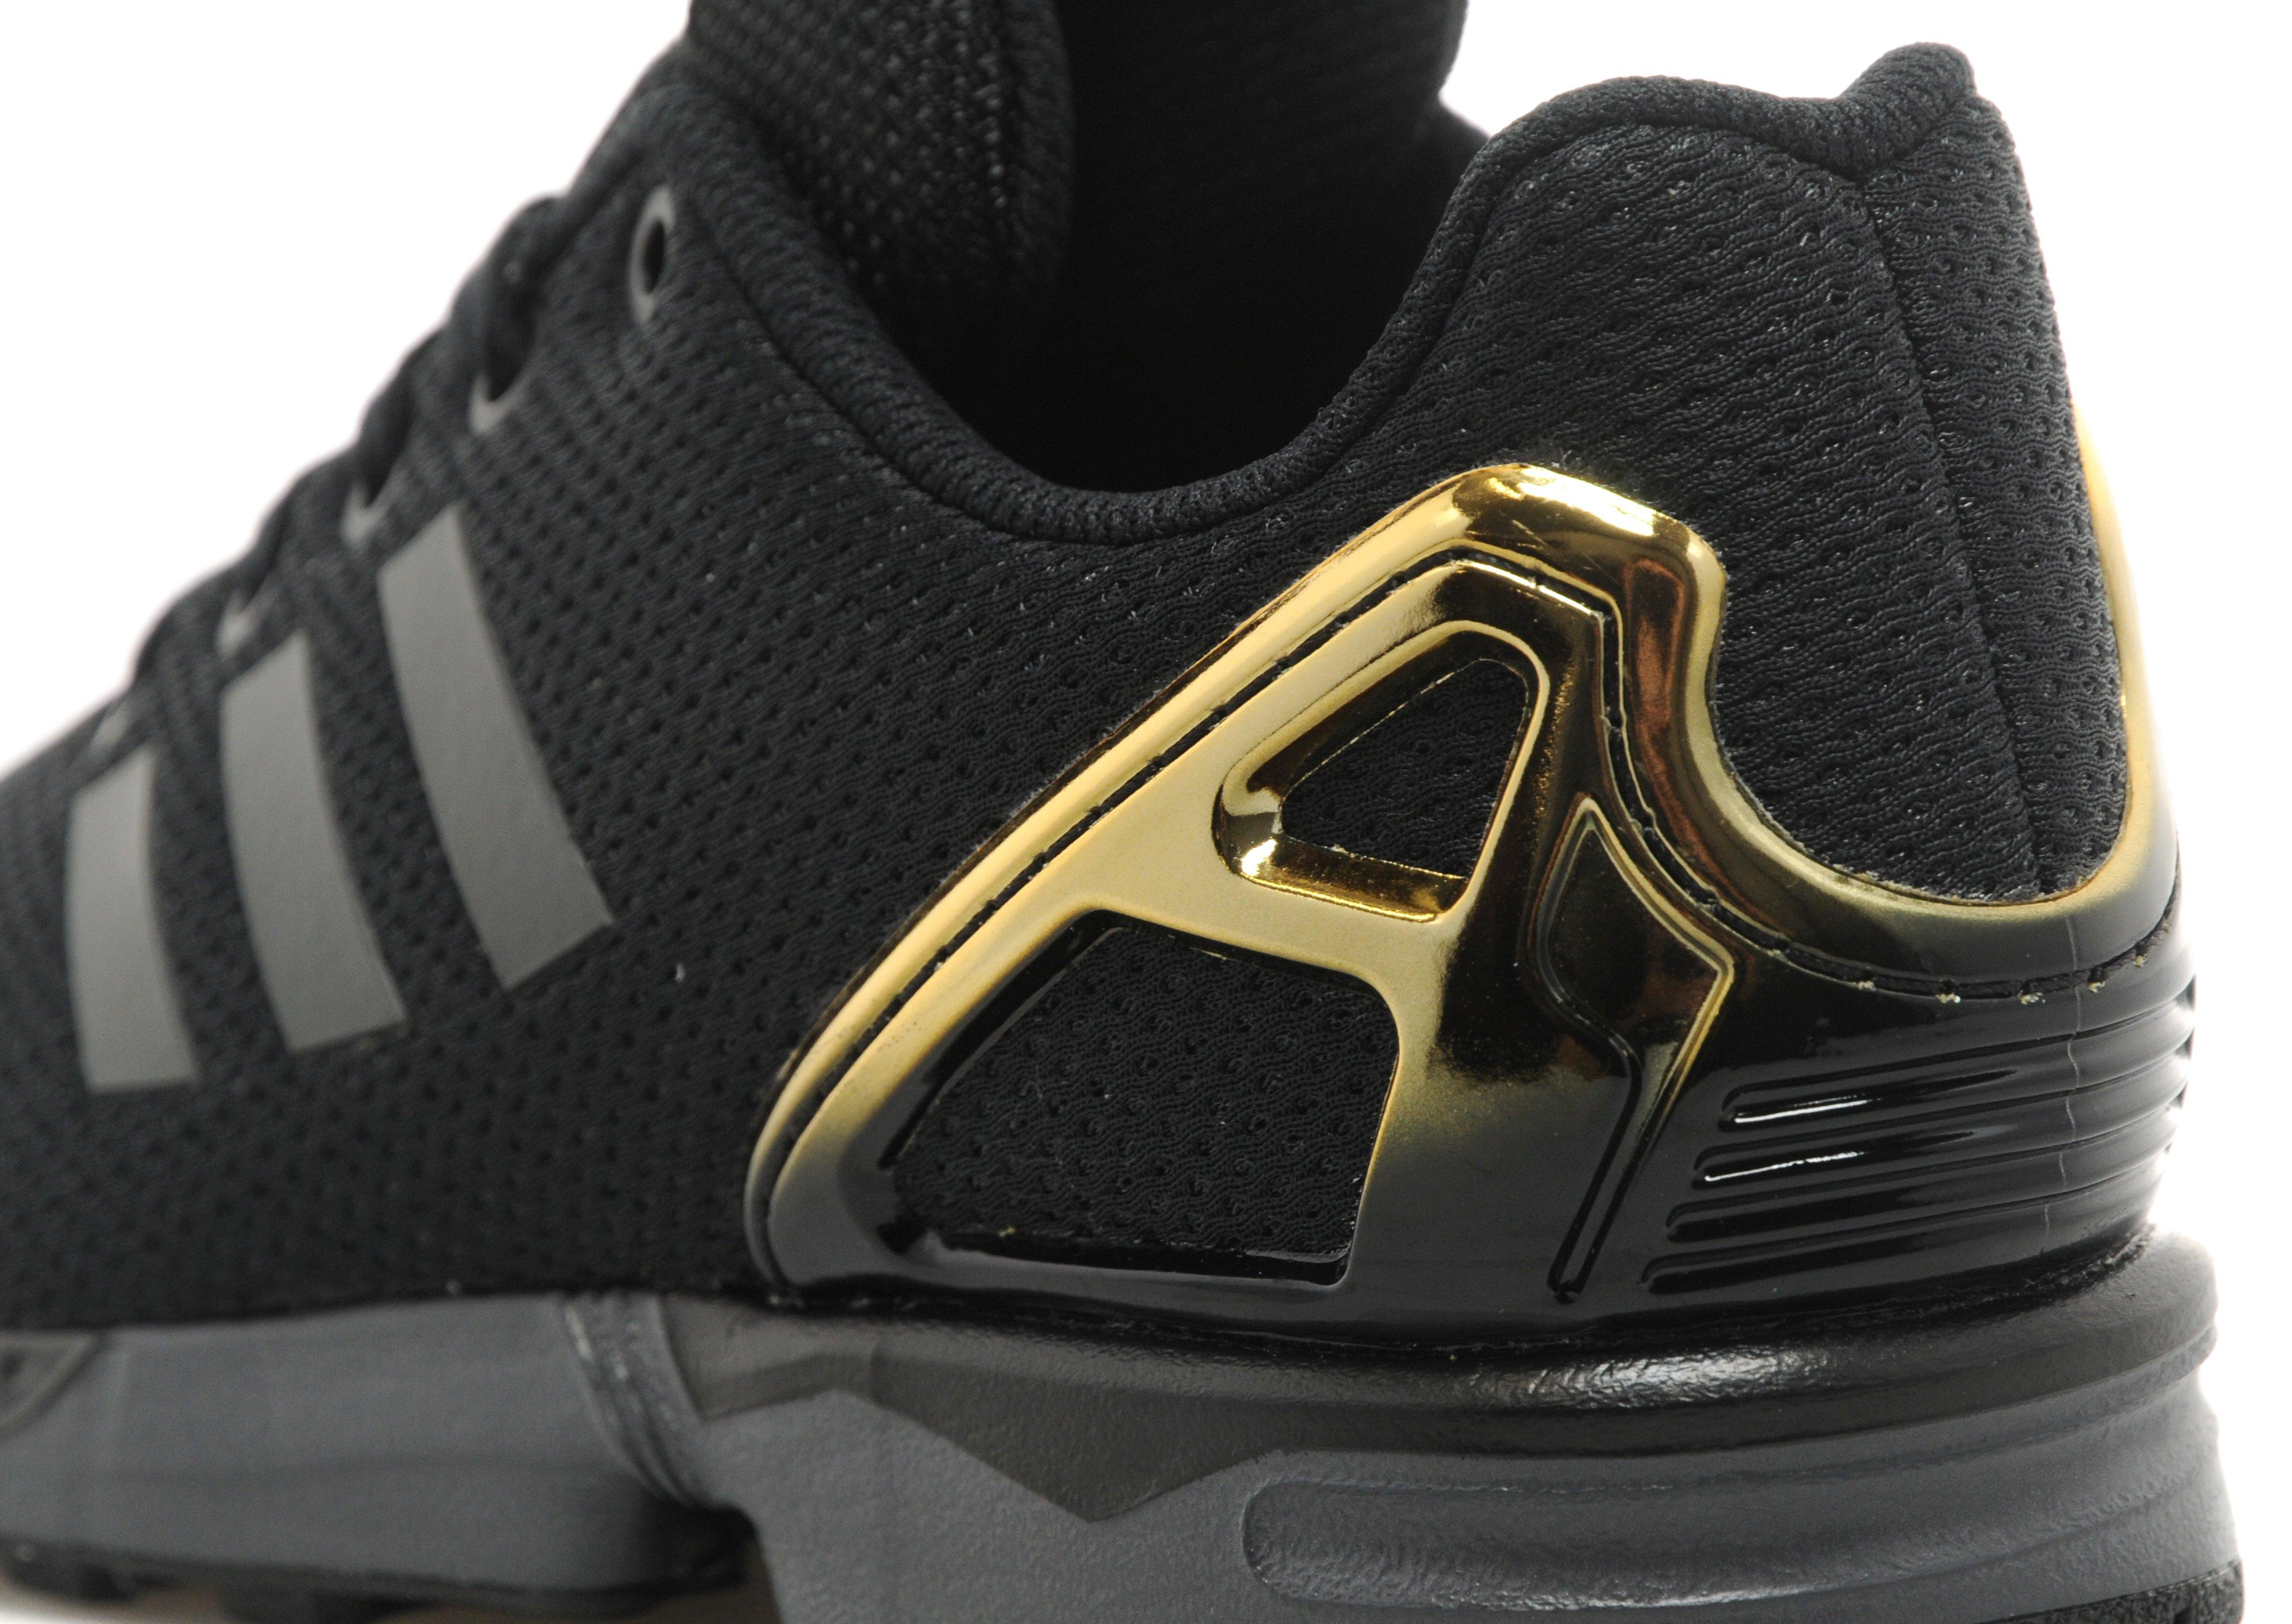 huge selection of 79fd0 2fd9c Adidas Zx Flux Black And Gold Jd